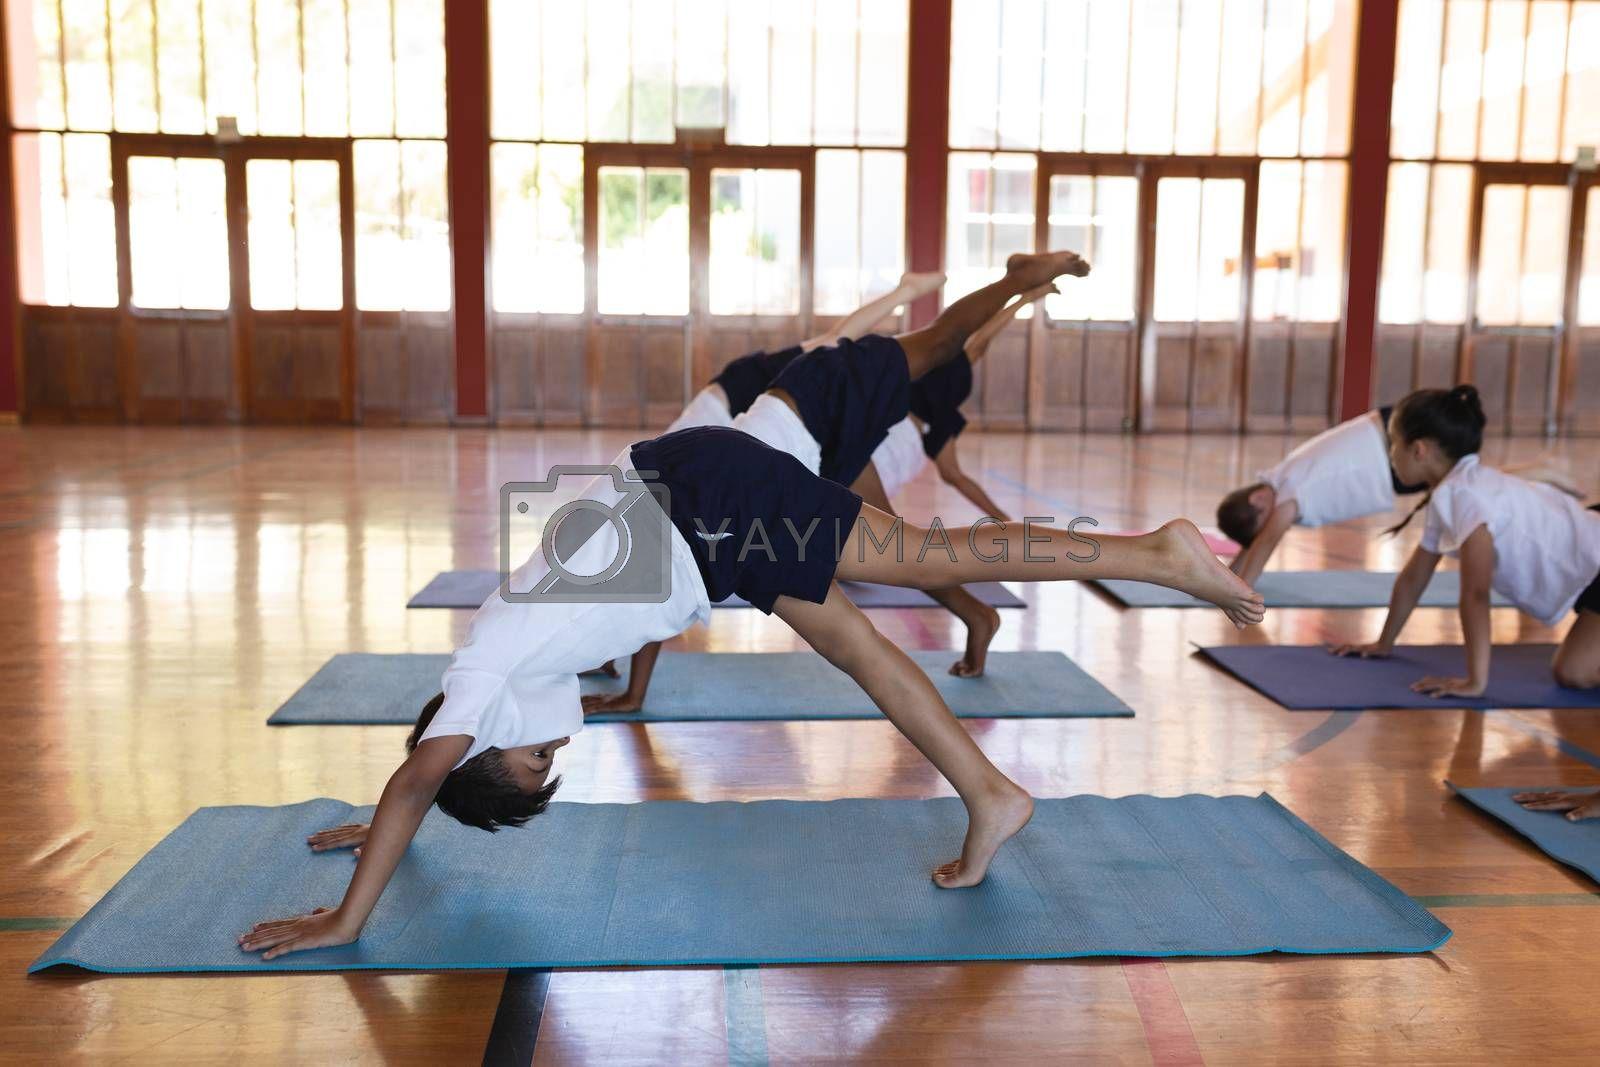 Side view of schoolkids doing yoga position on a yoga mat in school gymnast